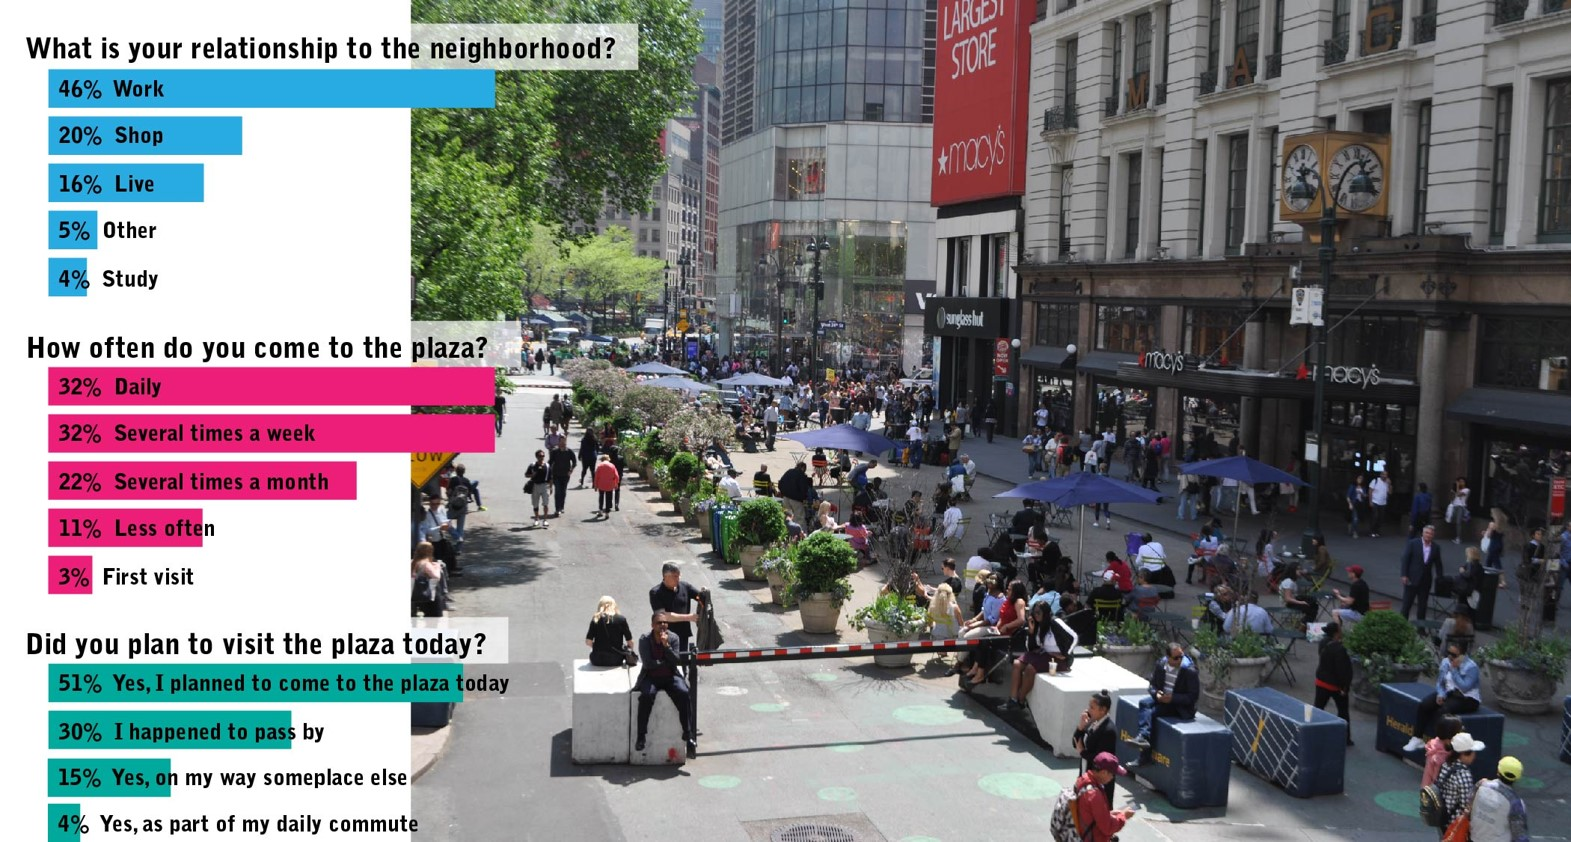 "Three graphs accompanied by a birds eye view photo of Herald Plaza during the summer. The first graph titled ""What is your relationship to the neighborhood?"" has 5 horizontal bars. The first reads ""46% Work"", the second reads ""20% Shop"", the third read ""16% Live"", the fourth reads ""5% Other"", and the last reads ""4% Study"".The graph titled ""How often do you come to the plaza"" has 5 bars. First reads ""32% Daily, second reads ""32% Several times a week"". third reads ""22% Several times a month"". fourth reads ""11% Less often"", and fifth reads ""3% First visit"". The last graph titled ""Did you plan to visit the plaza today"" has four bars. First reads ""51% Yes, I planned to come to the plaza today"", second reads ""30% I happened to pass by, third reads ""15% yes, on my way someplace else"", and fourth reads ""4% Yes, as part of my daily commute""."